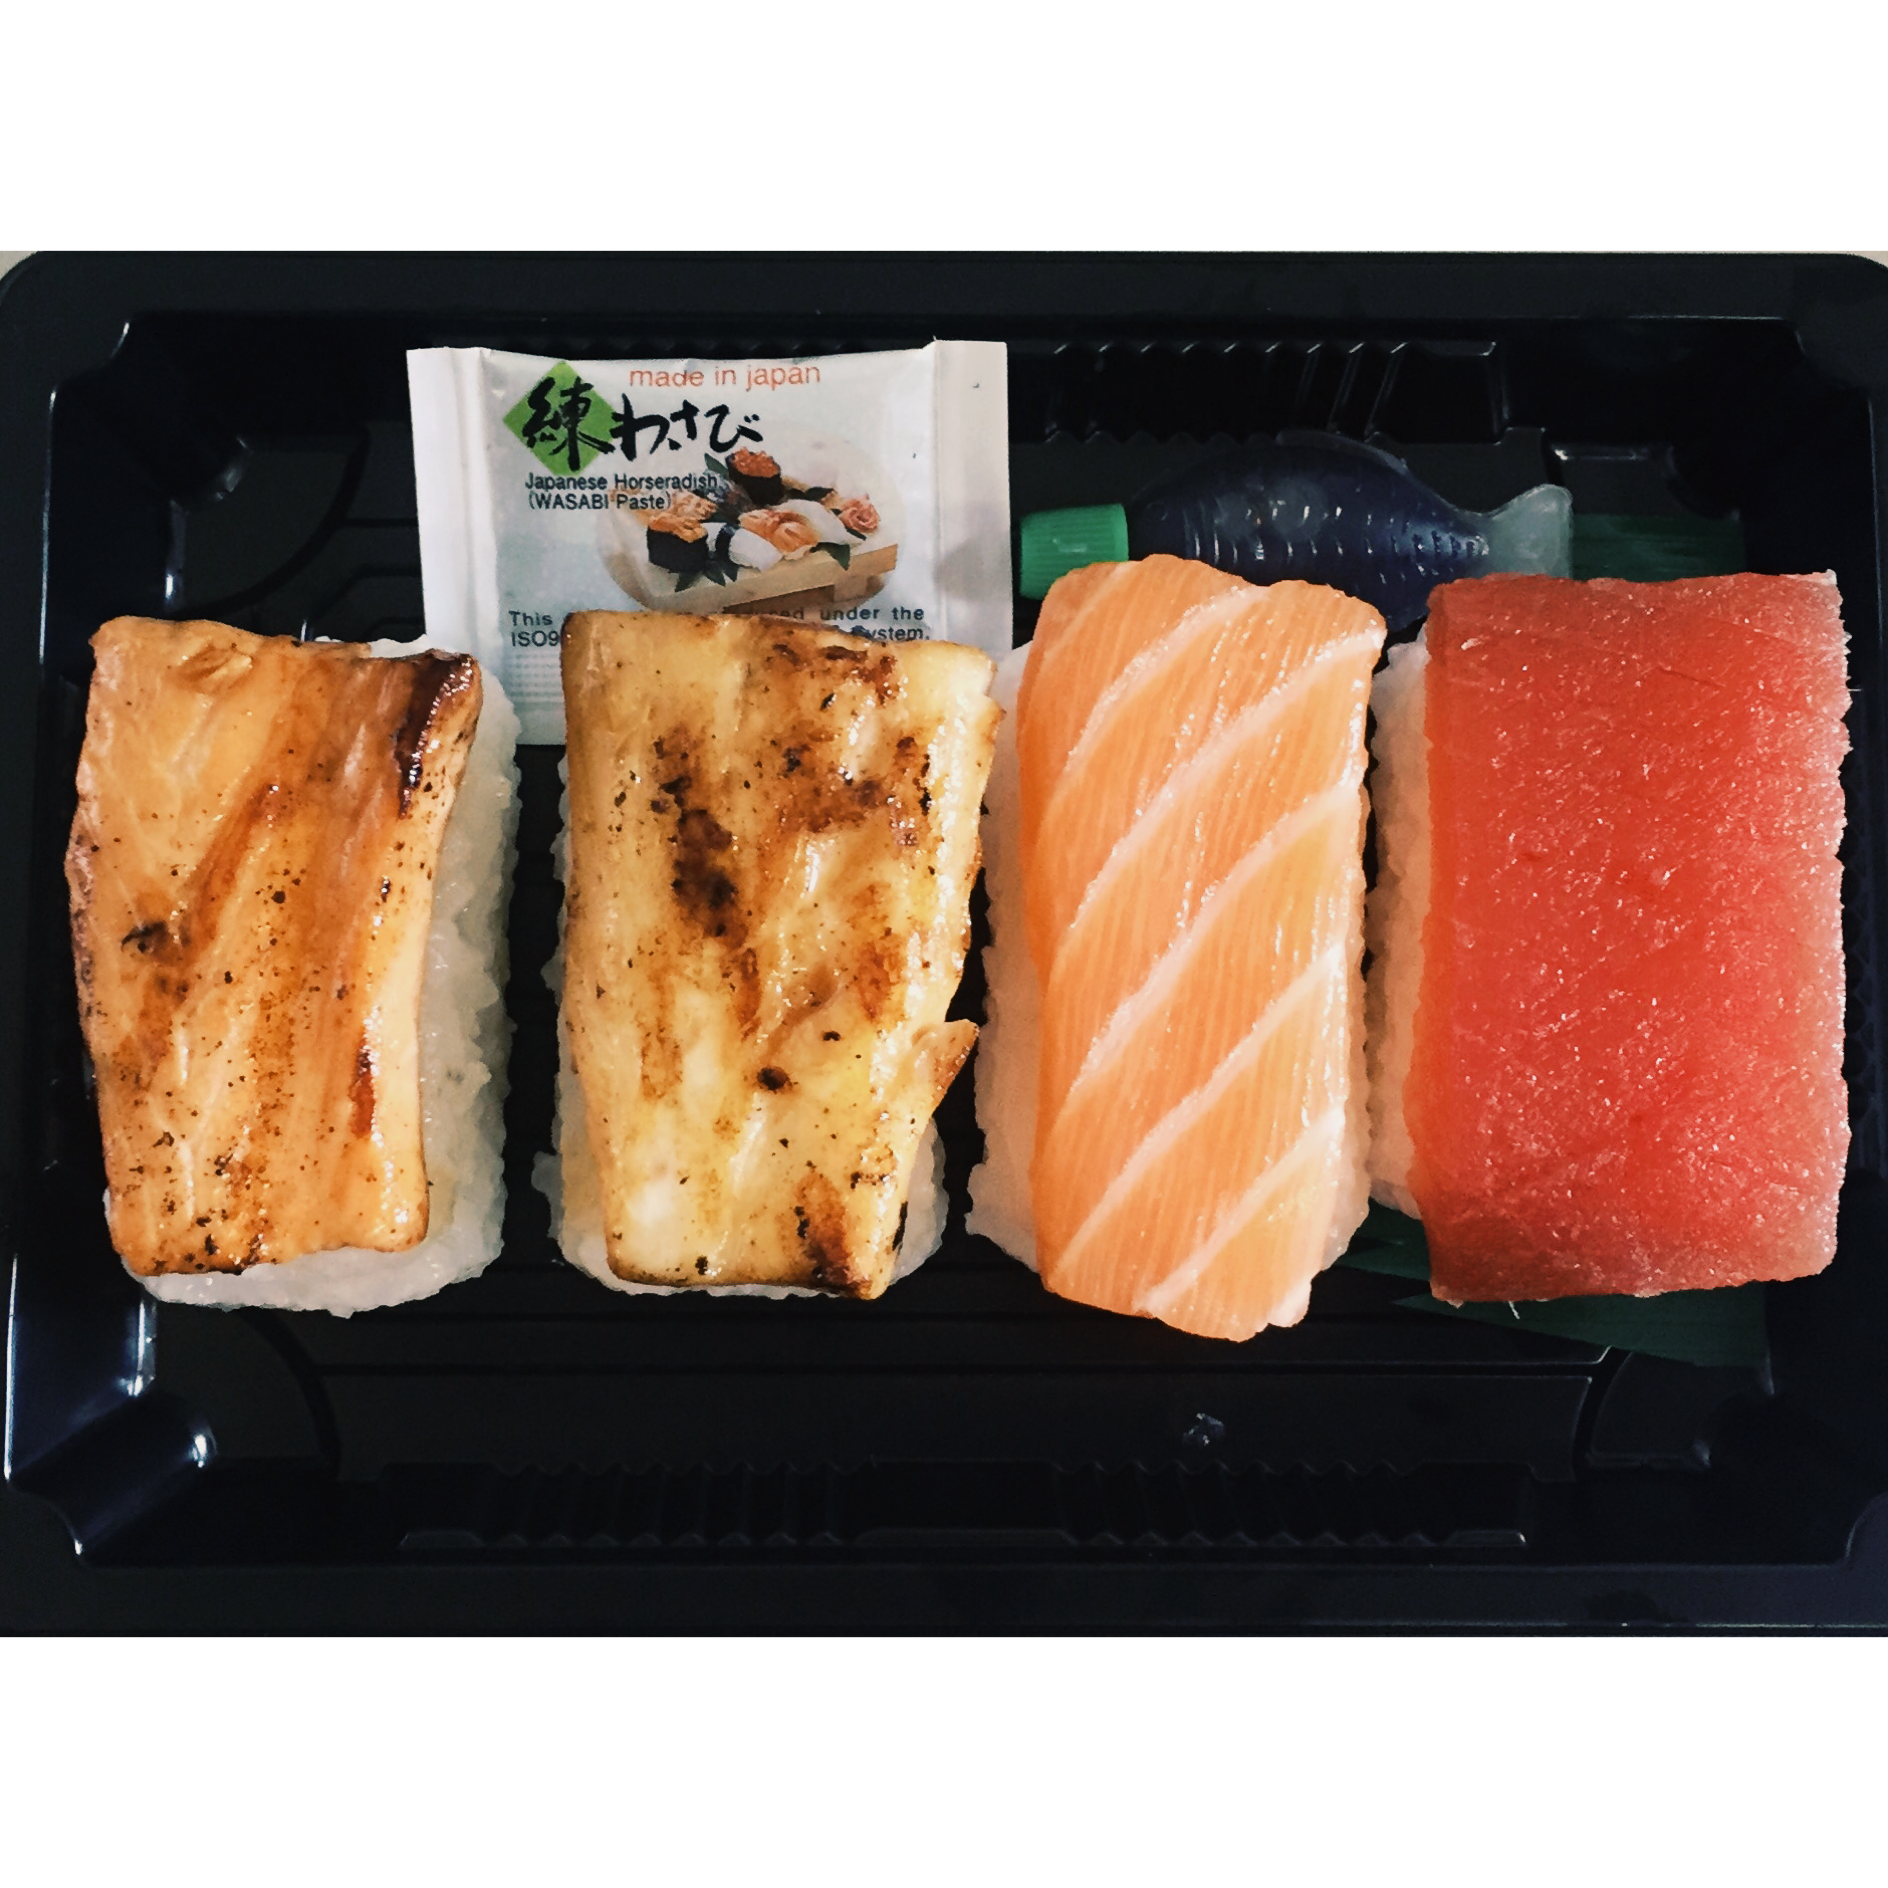 THE MIXED NIGIRI BOX - £4.50  Includes 1 x grilled teriyaki salmon, 1 x grilled teriyaki sea bass, 1 x salmon, 1 x tuna